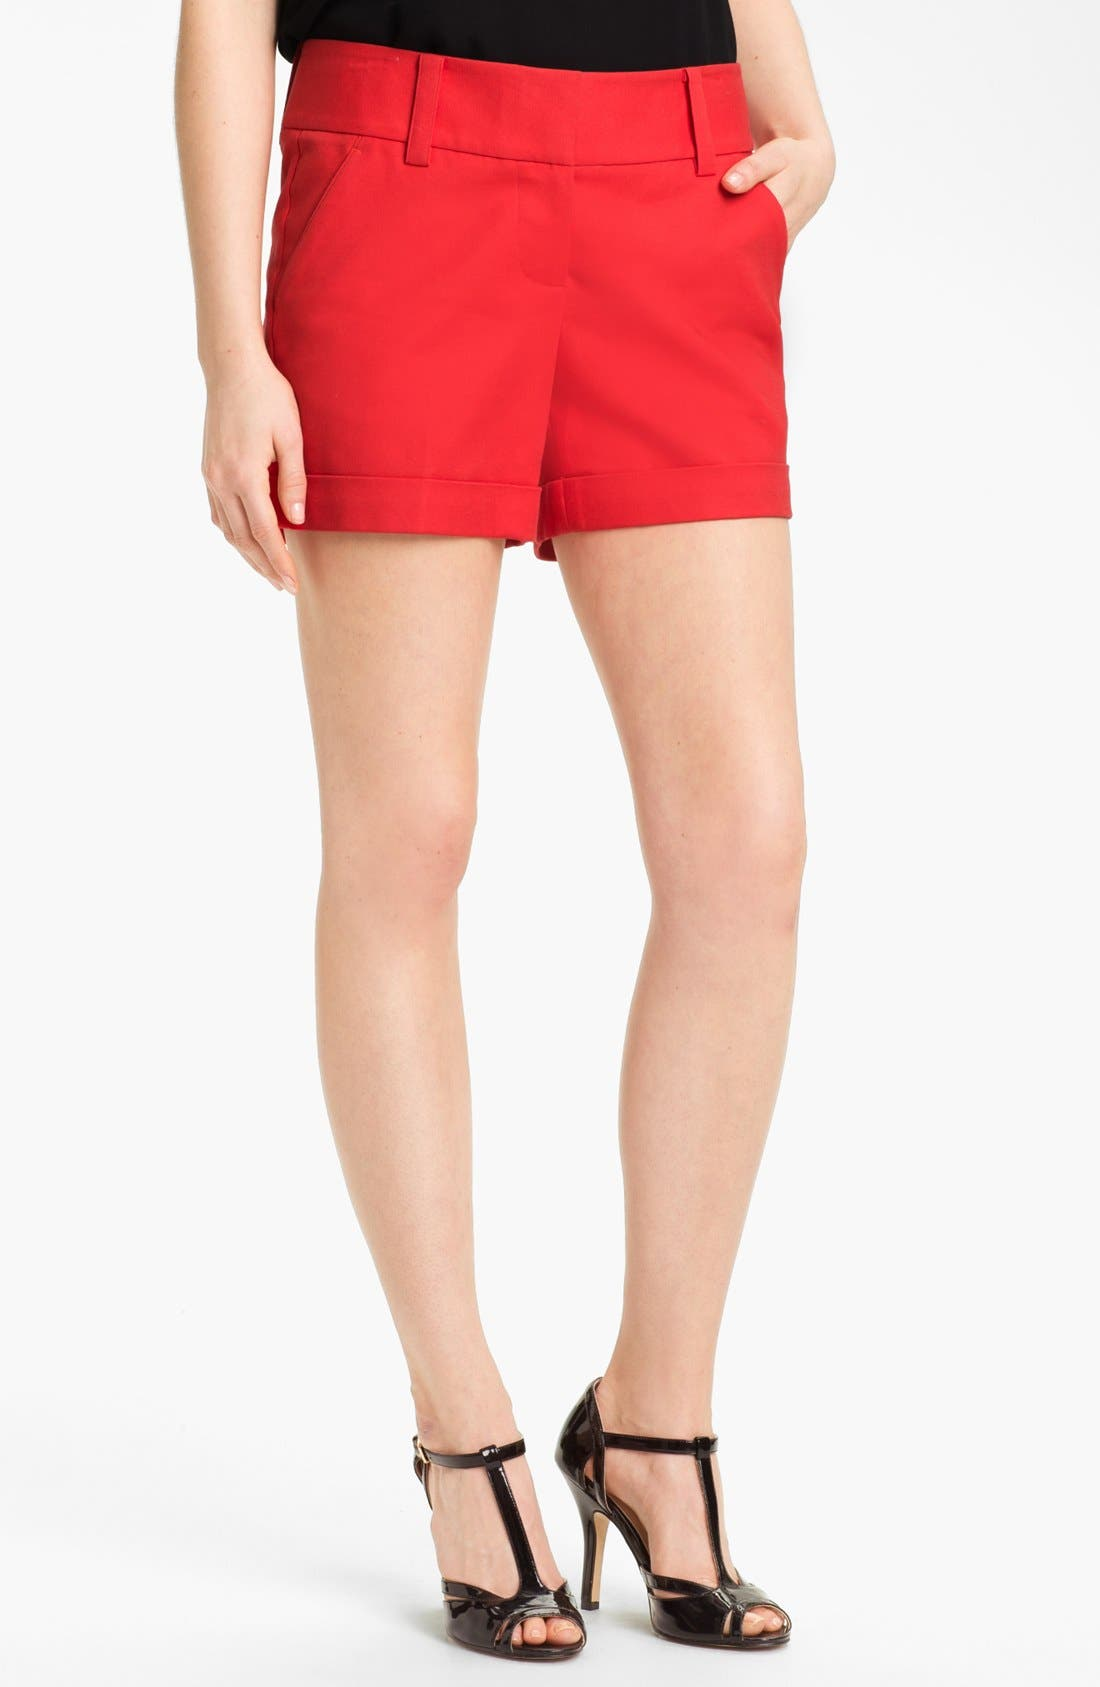 Alternate Image 1 Selected - Vince Camuto Cuff Shorts (Regular & Petite)